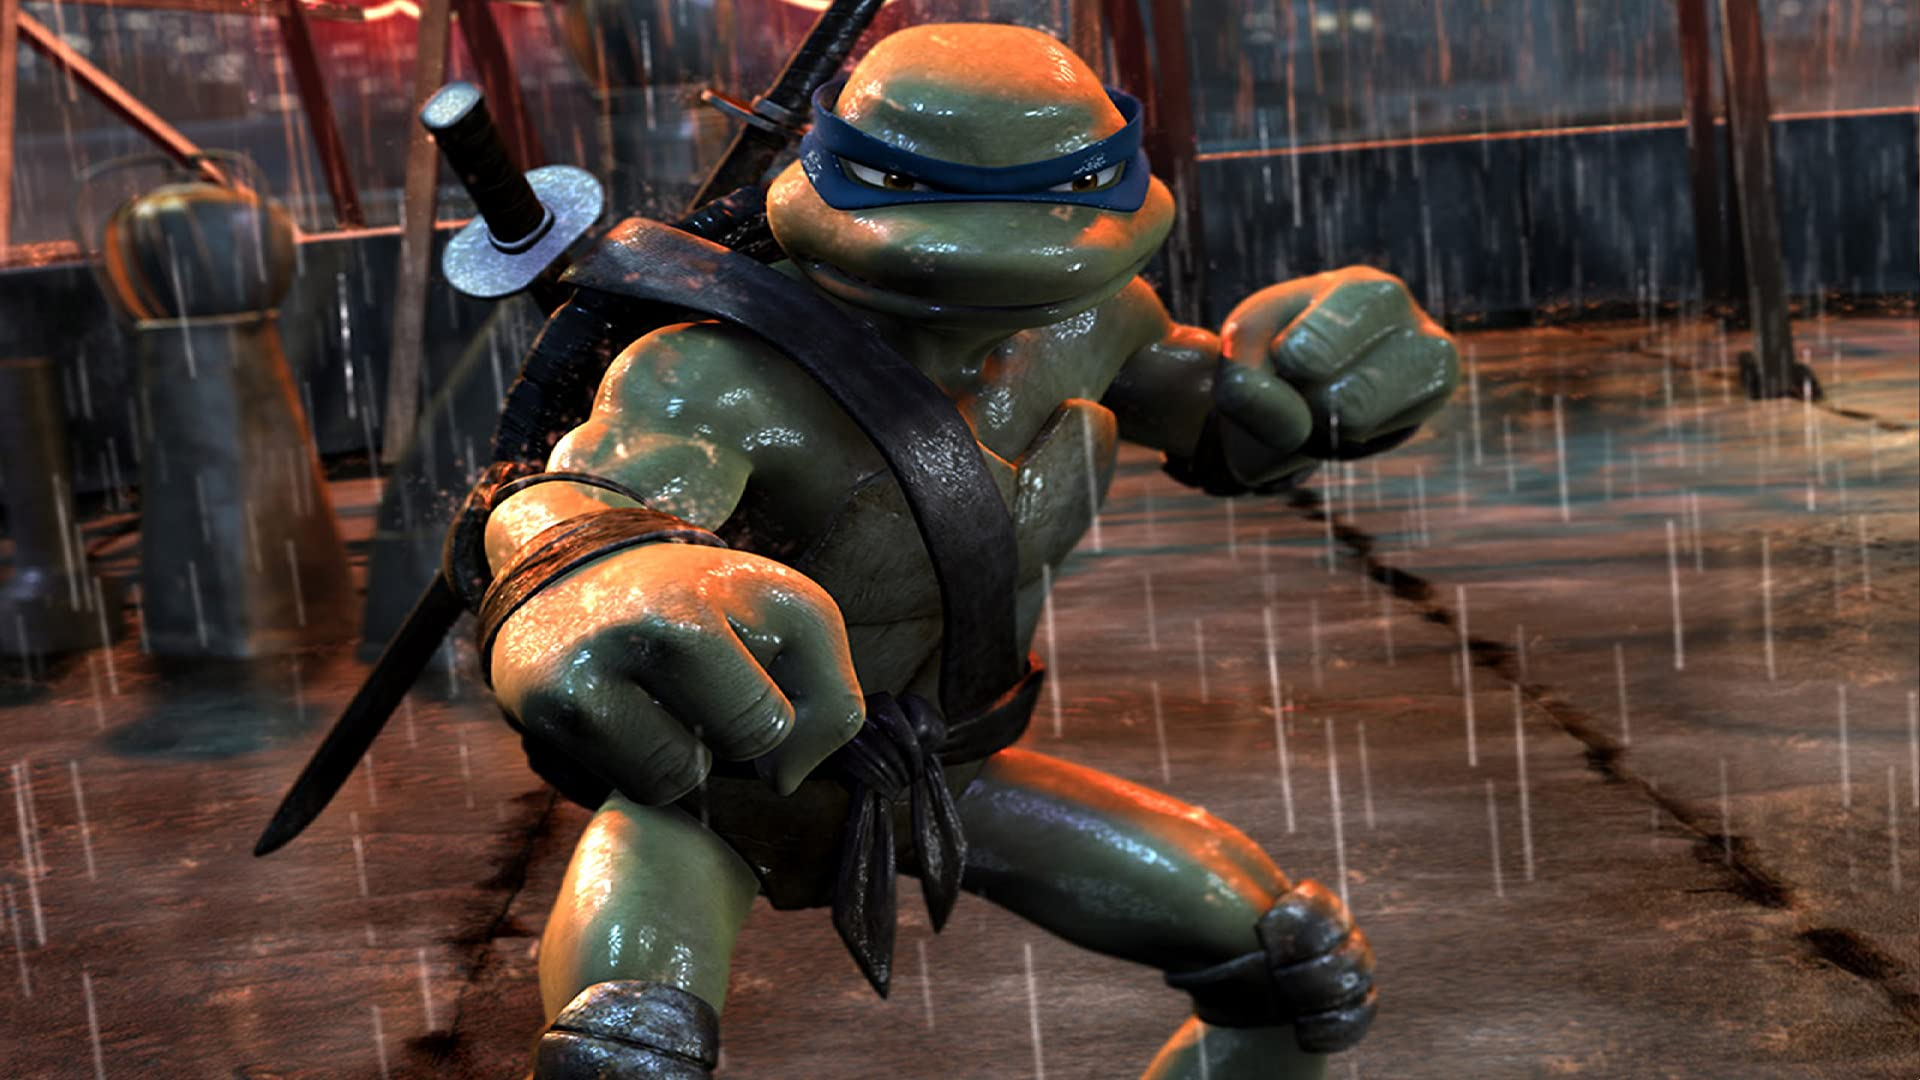 Amazon.com: Teenage Mutant Ninja Turtles: Turtles Forever ...